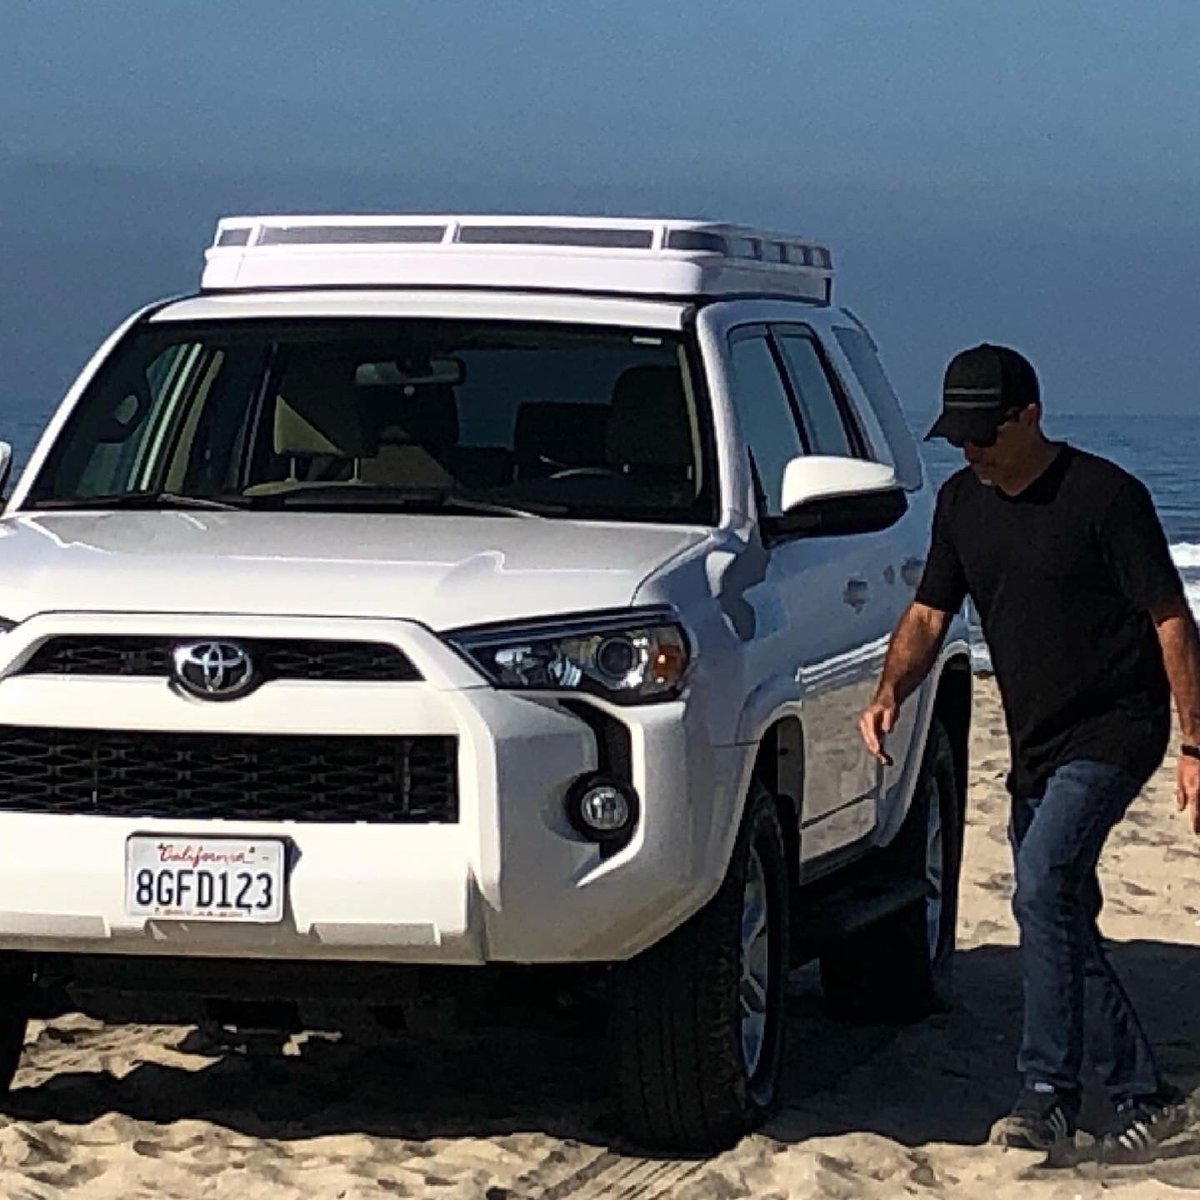 """Me and my buddy had to leave the concrete and make our way to the beach this weekend. And did we say we've now integrated """"Convoy"""" for 4Runner? #overlanding #beachlife #overlandinglife #4runner #sleek #beachparty https://t.co/X2MP0s3qXC"""